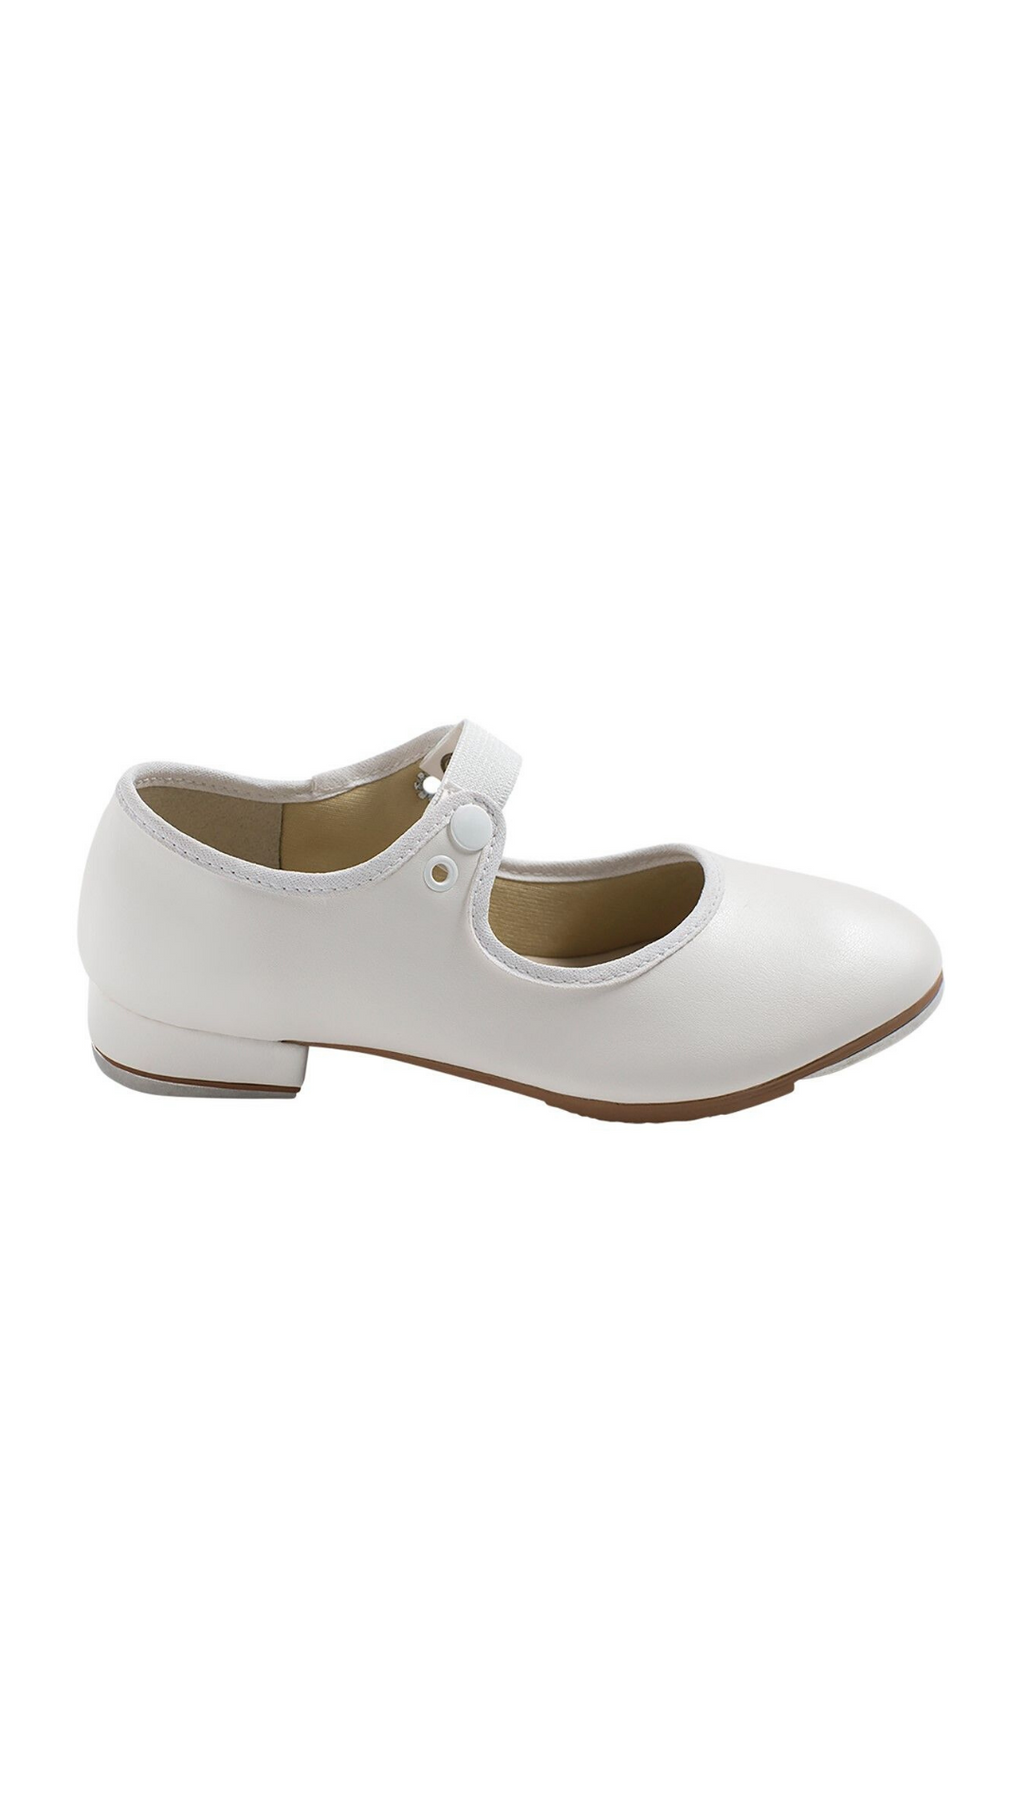 Val Tie and Snap Tap Shoe TA36-Adult (White)